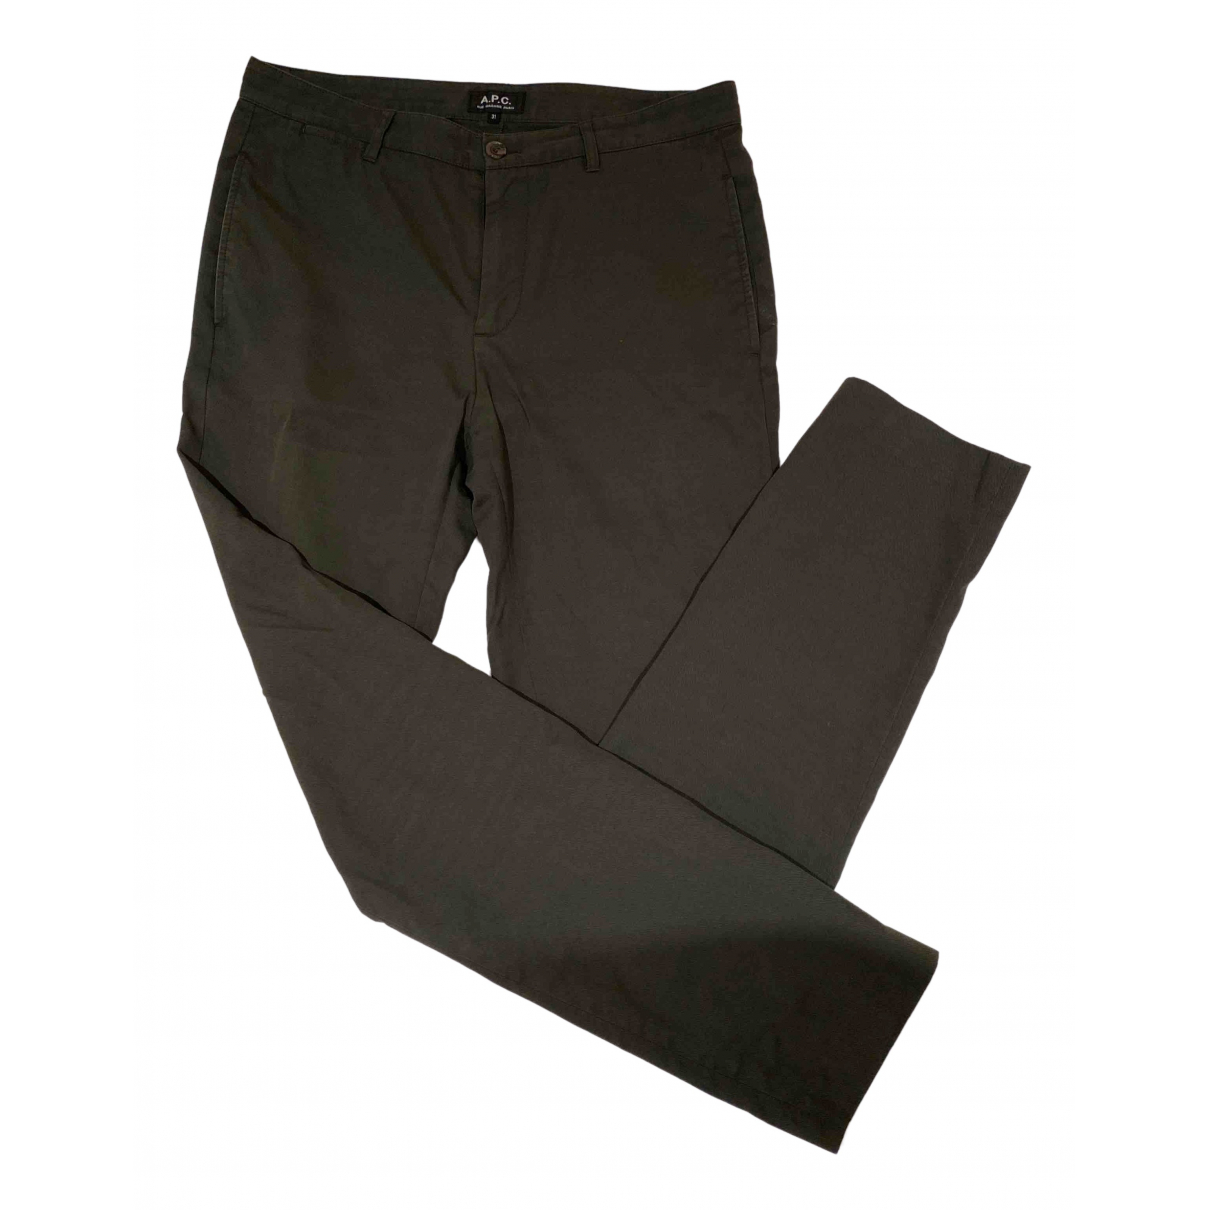 Apc \N Green Cotton Trousers for Men 30 UK - US